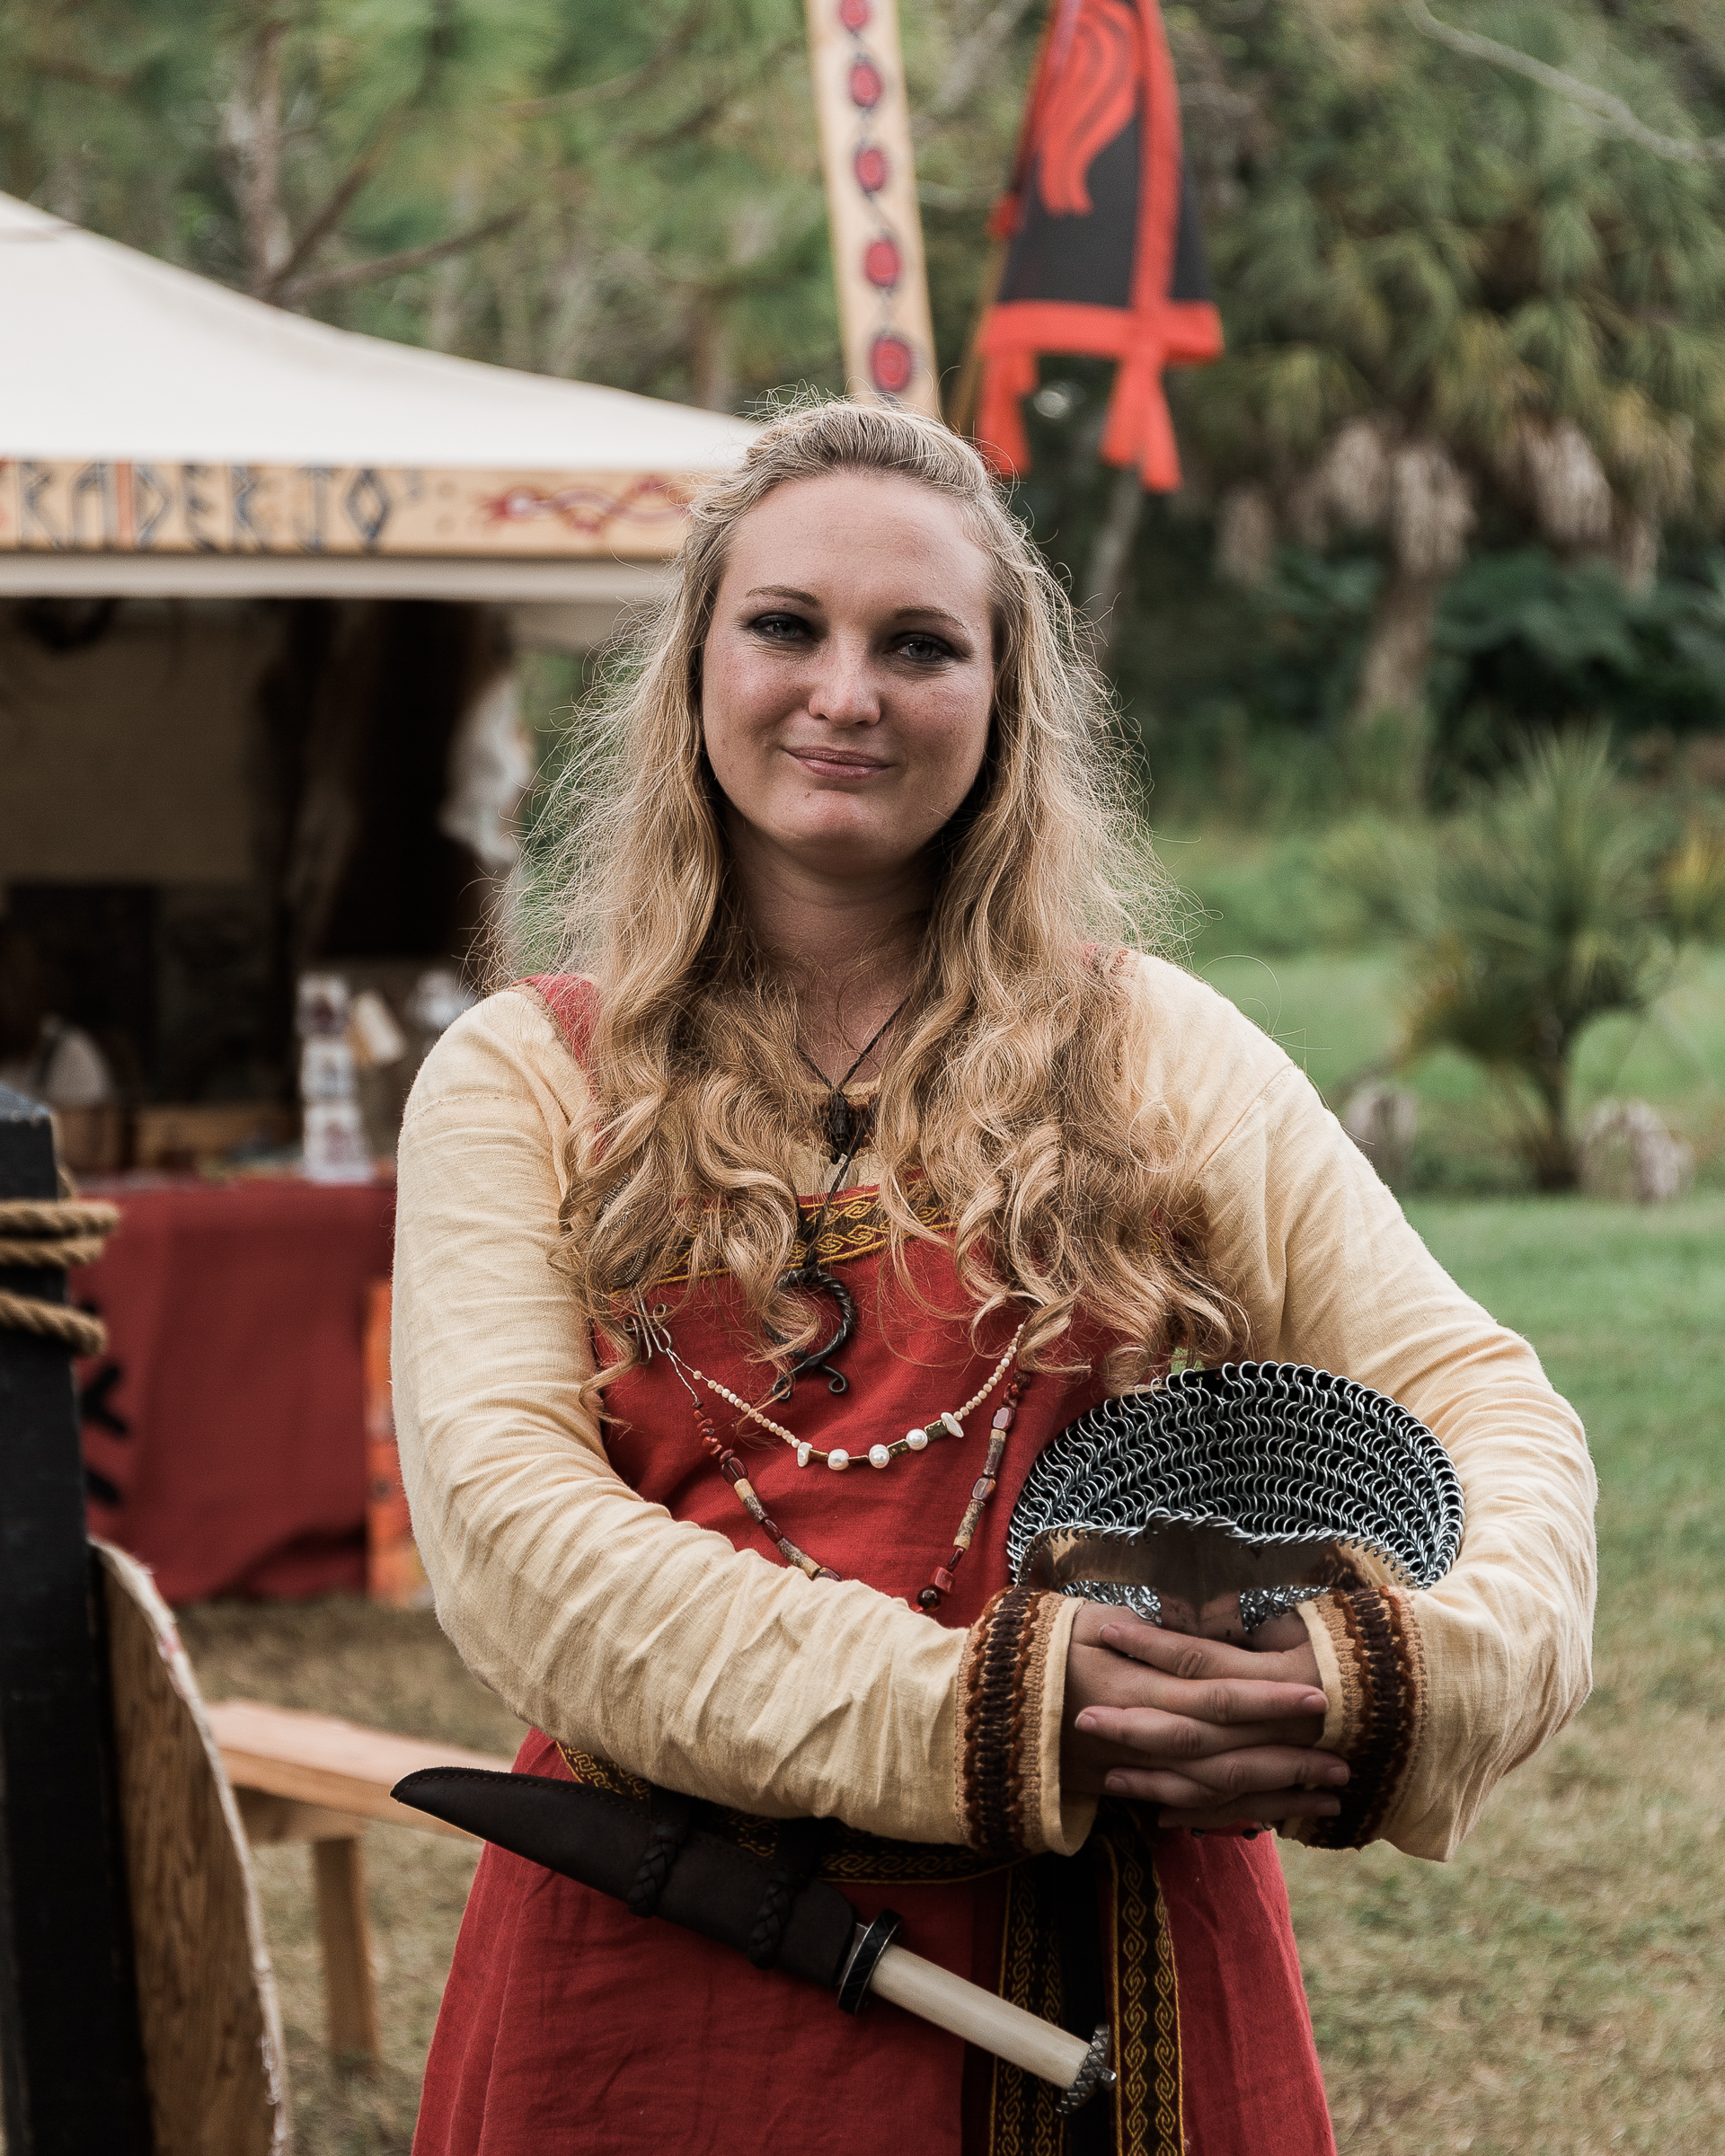 20181118_Sarasota Medieval Fair_ © Madison Greer Photography_1537.jpg